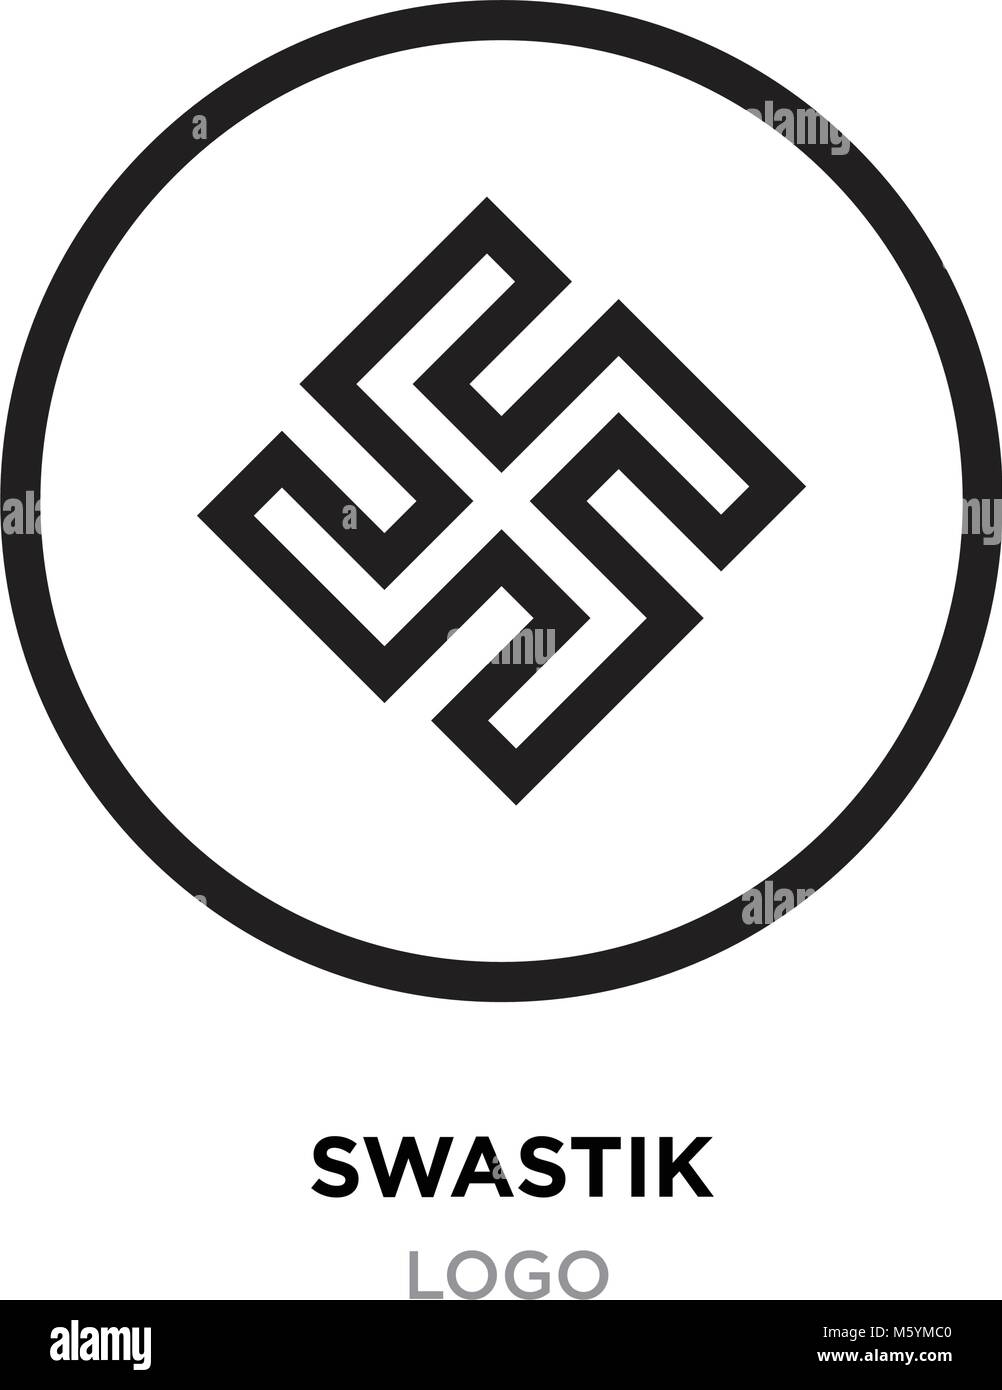 Swastik Stock Photos Swastik Stock Images Alamy